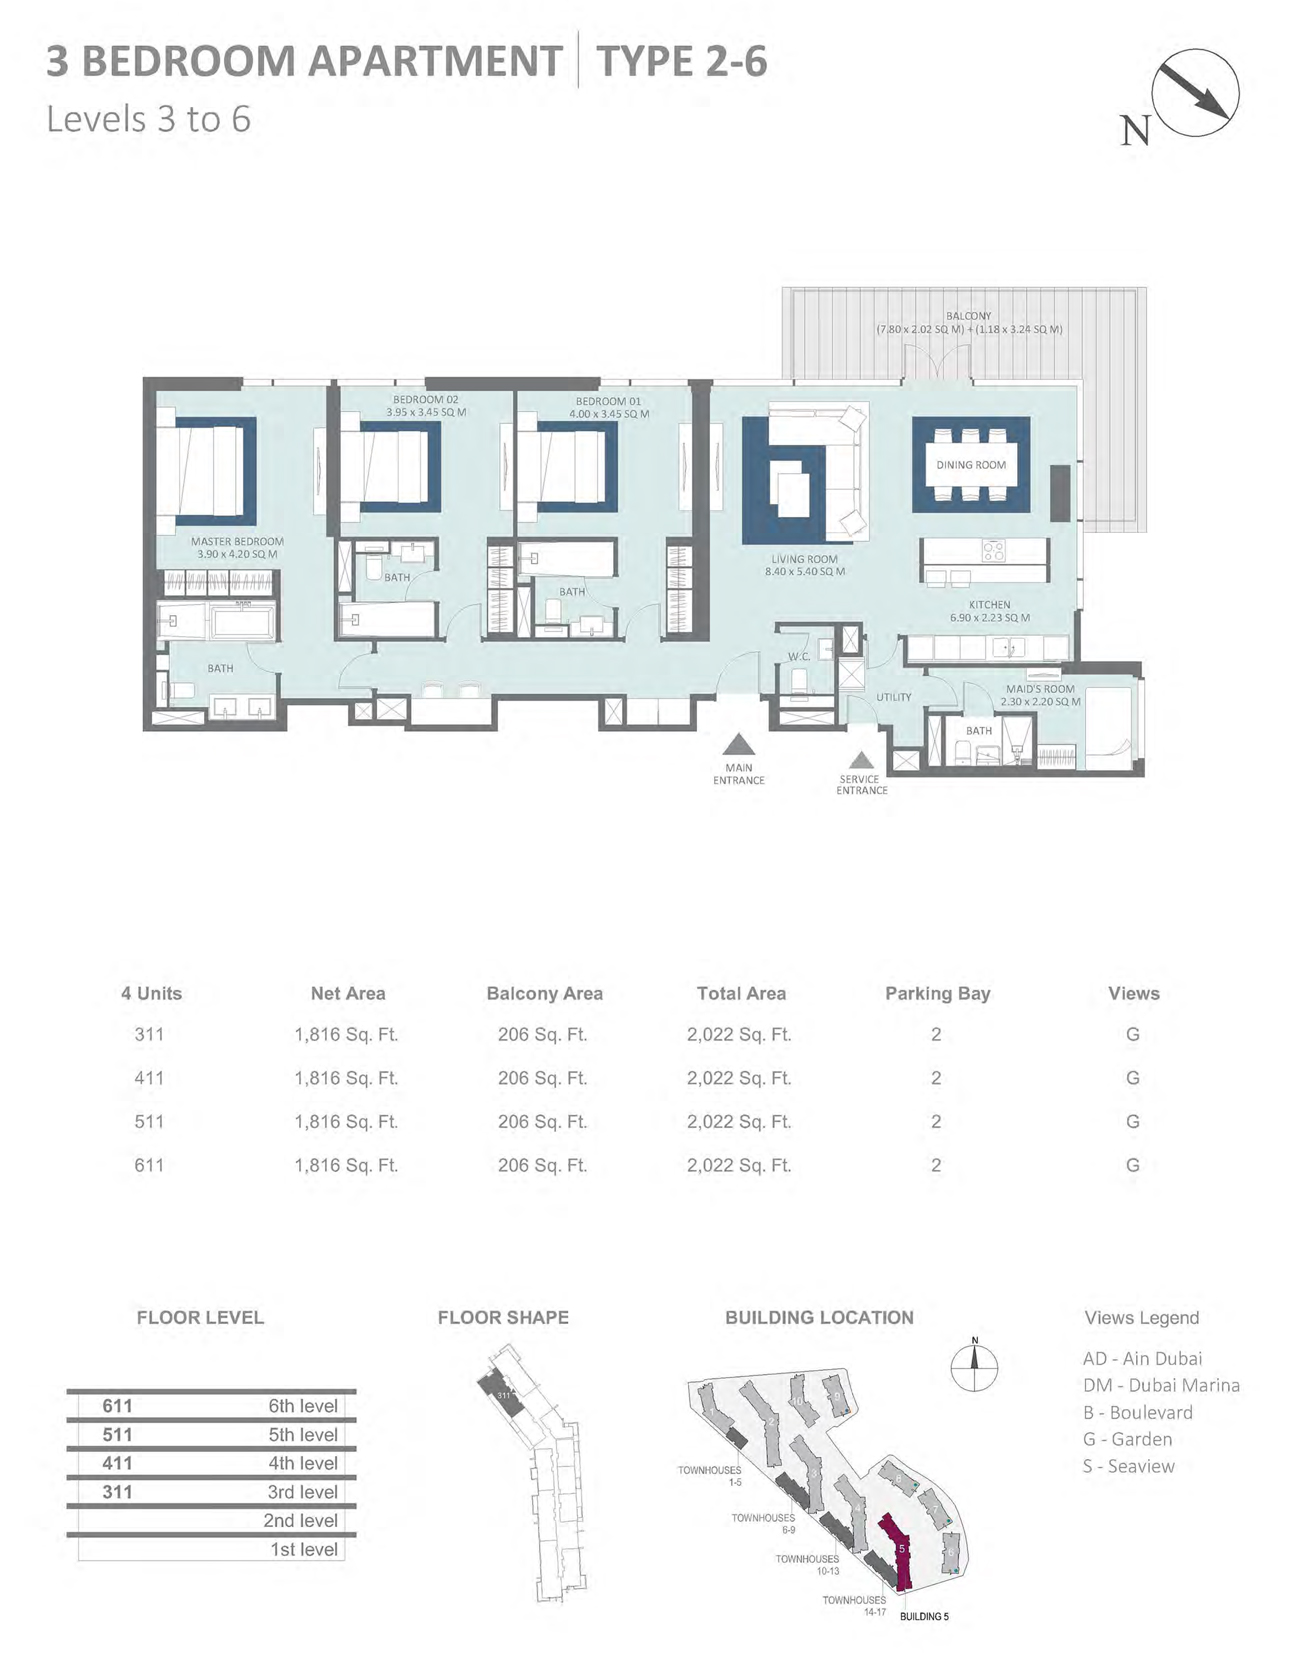 Building 5 - 3 Bedroom Type 2-6 Level 3-6 , Size 2022    sq. ft.